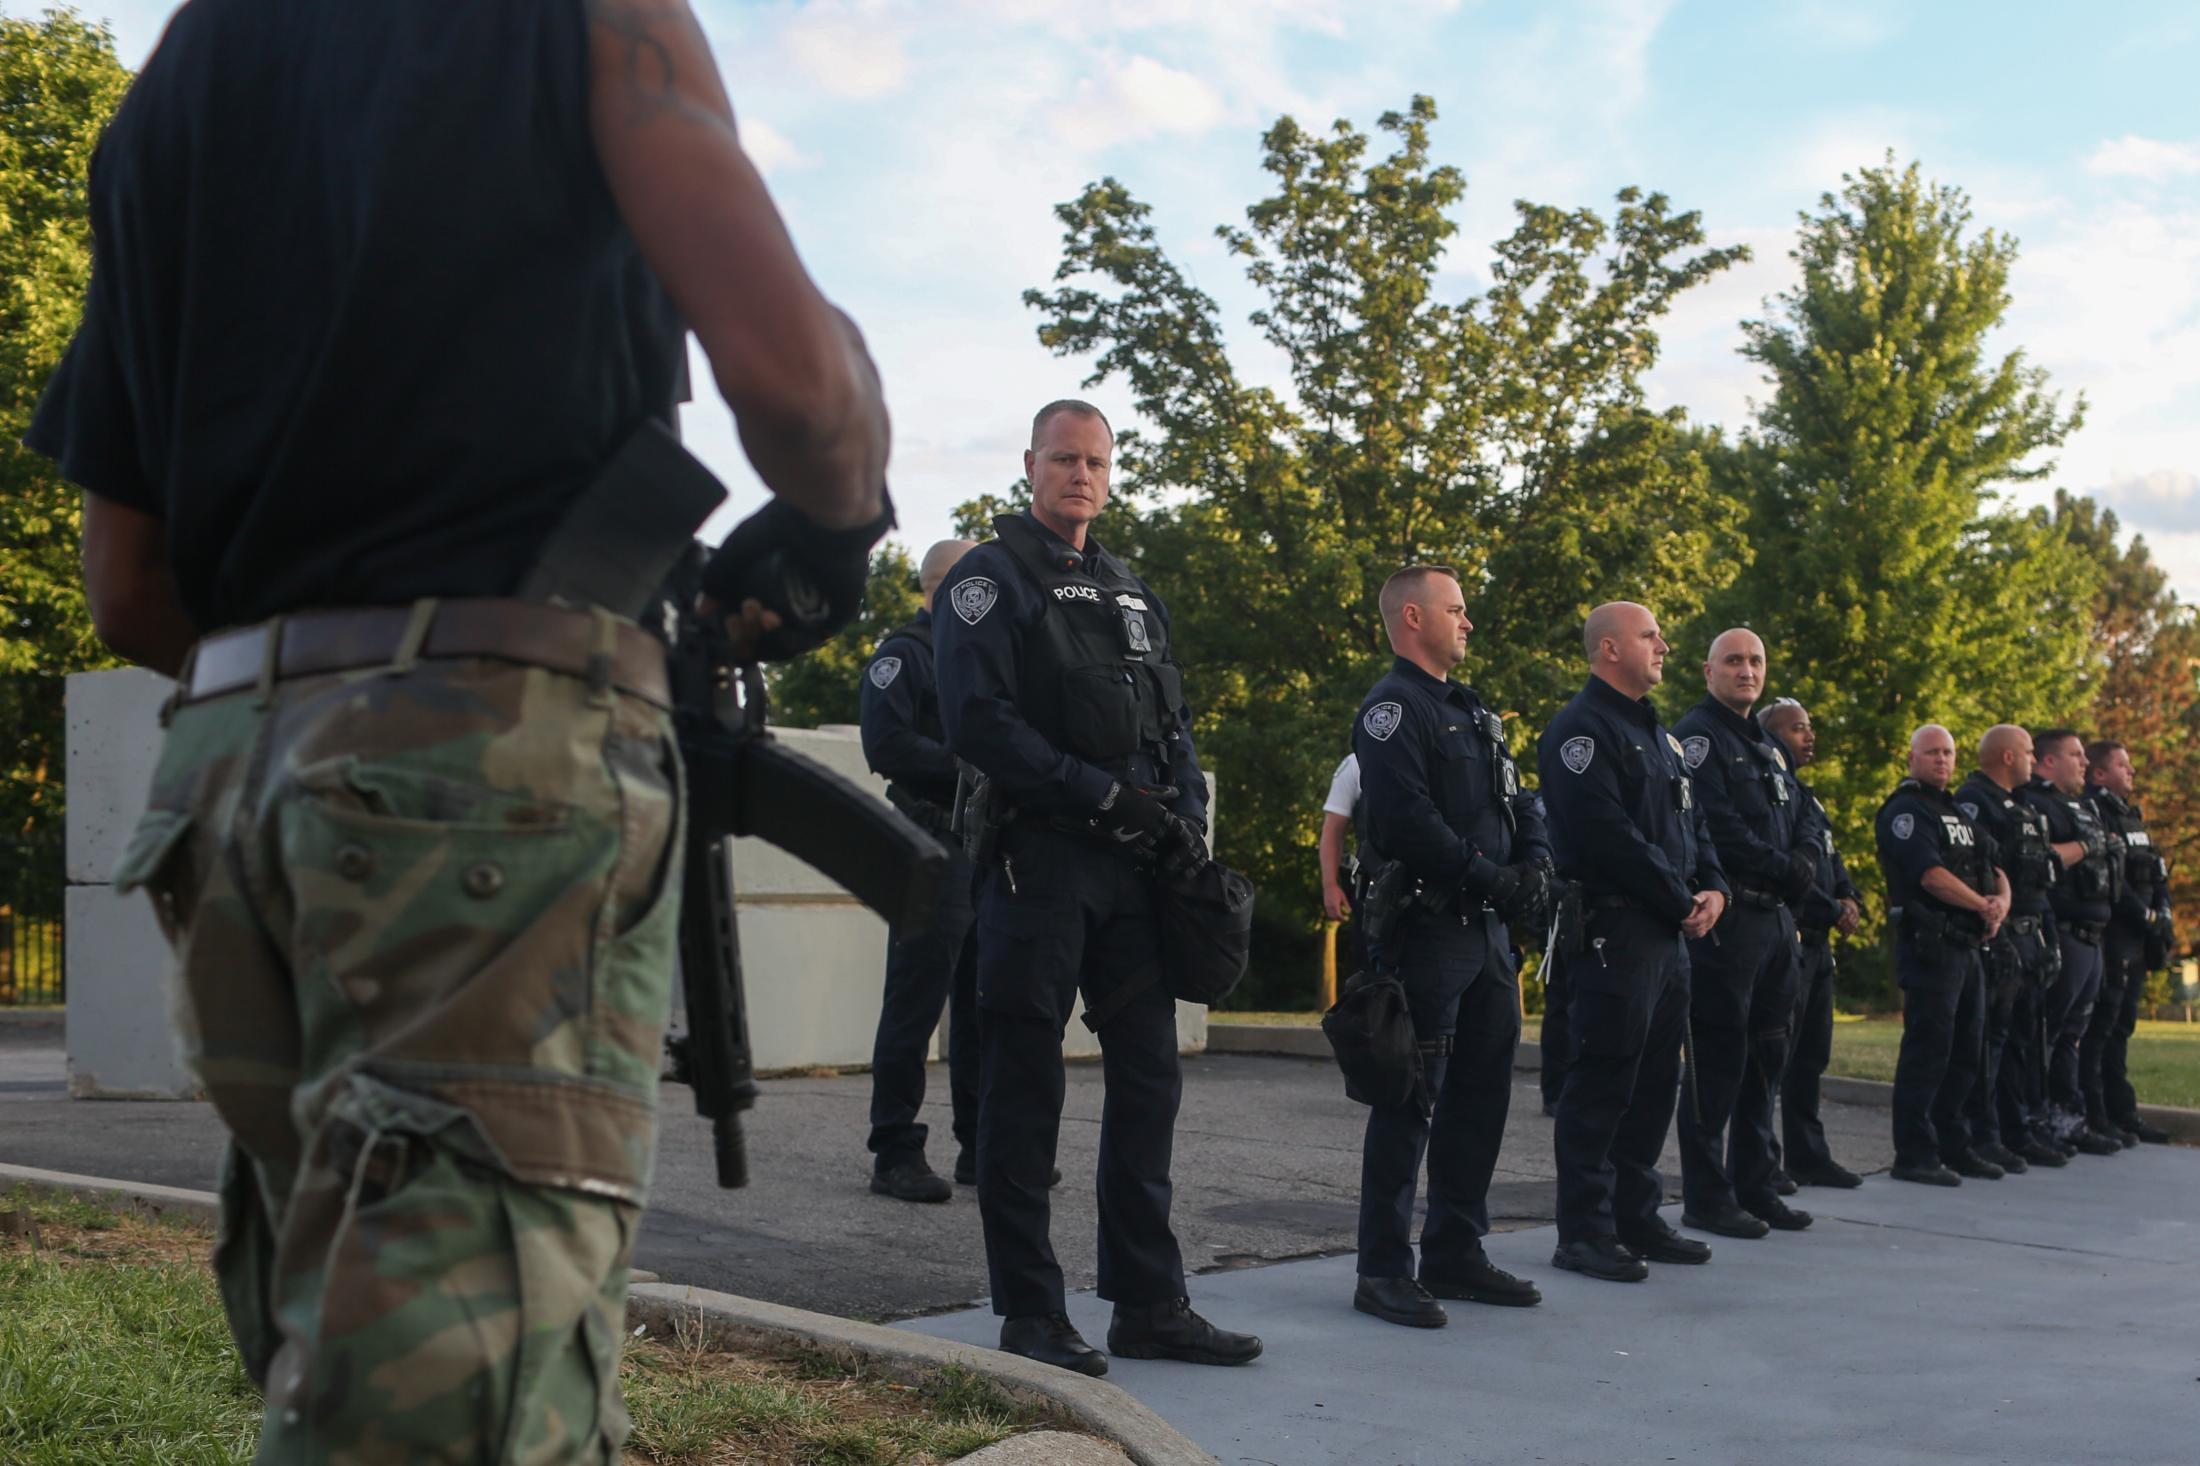 An armed protester walks in front of a line of Florissant police officers moments before shooting himself in the foot from an accidental discharge of his AR-15 on June 23, 2020, during a protest against former Florrissant officer Joshua Smith. On June 7, 2020, Smith was caught on tape hitting a man with an unmarked vehicle in the nearby municipality of Dellwood, Missouri prompting demonstrations at the police station.